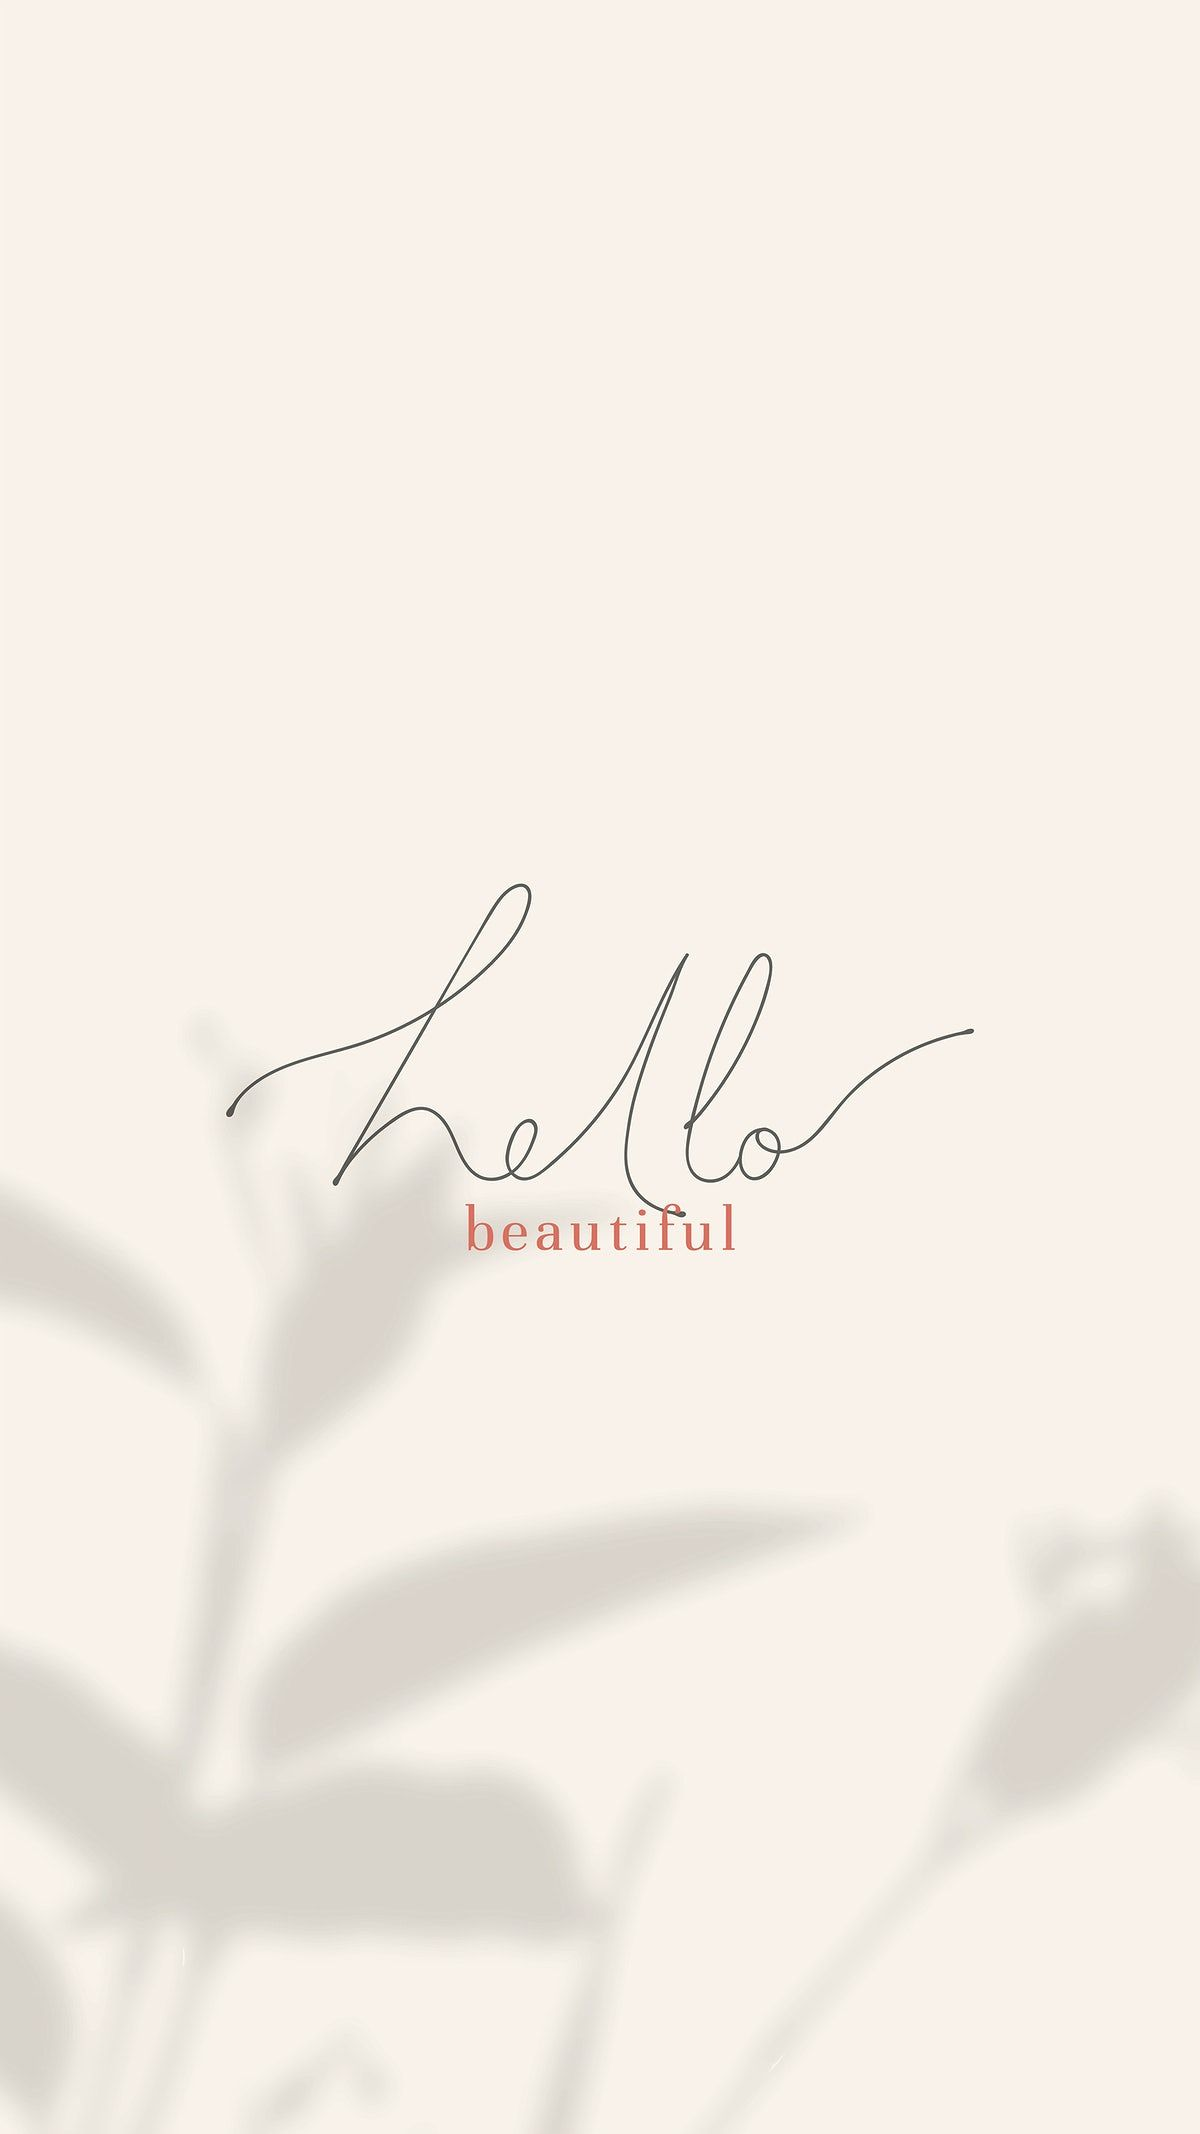 Download free image of Hello beautiful handwritten design mobile background by Aew about background beautiful, iphone background, wallpaper, Wallpaper minimalist phone, and black iphone wallpaper 2042170